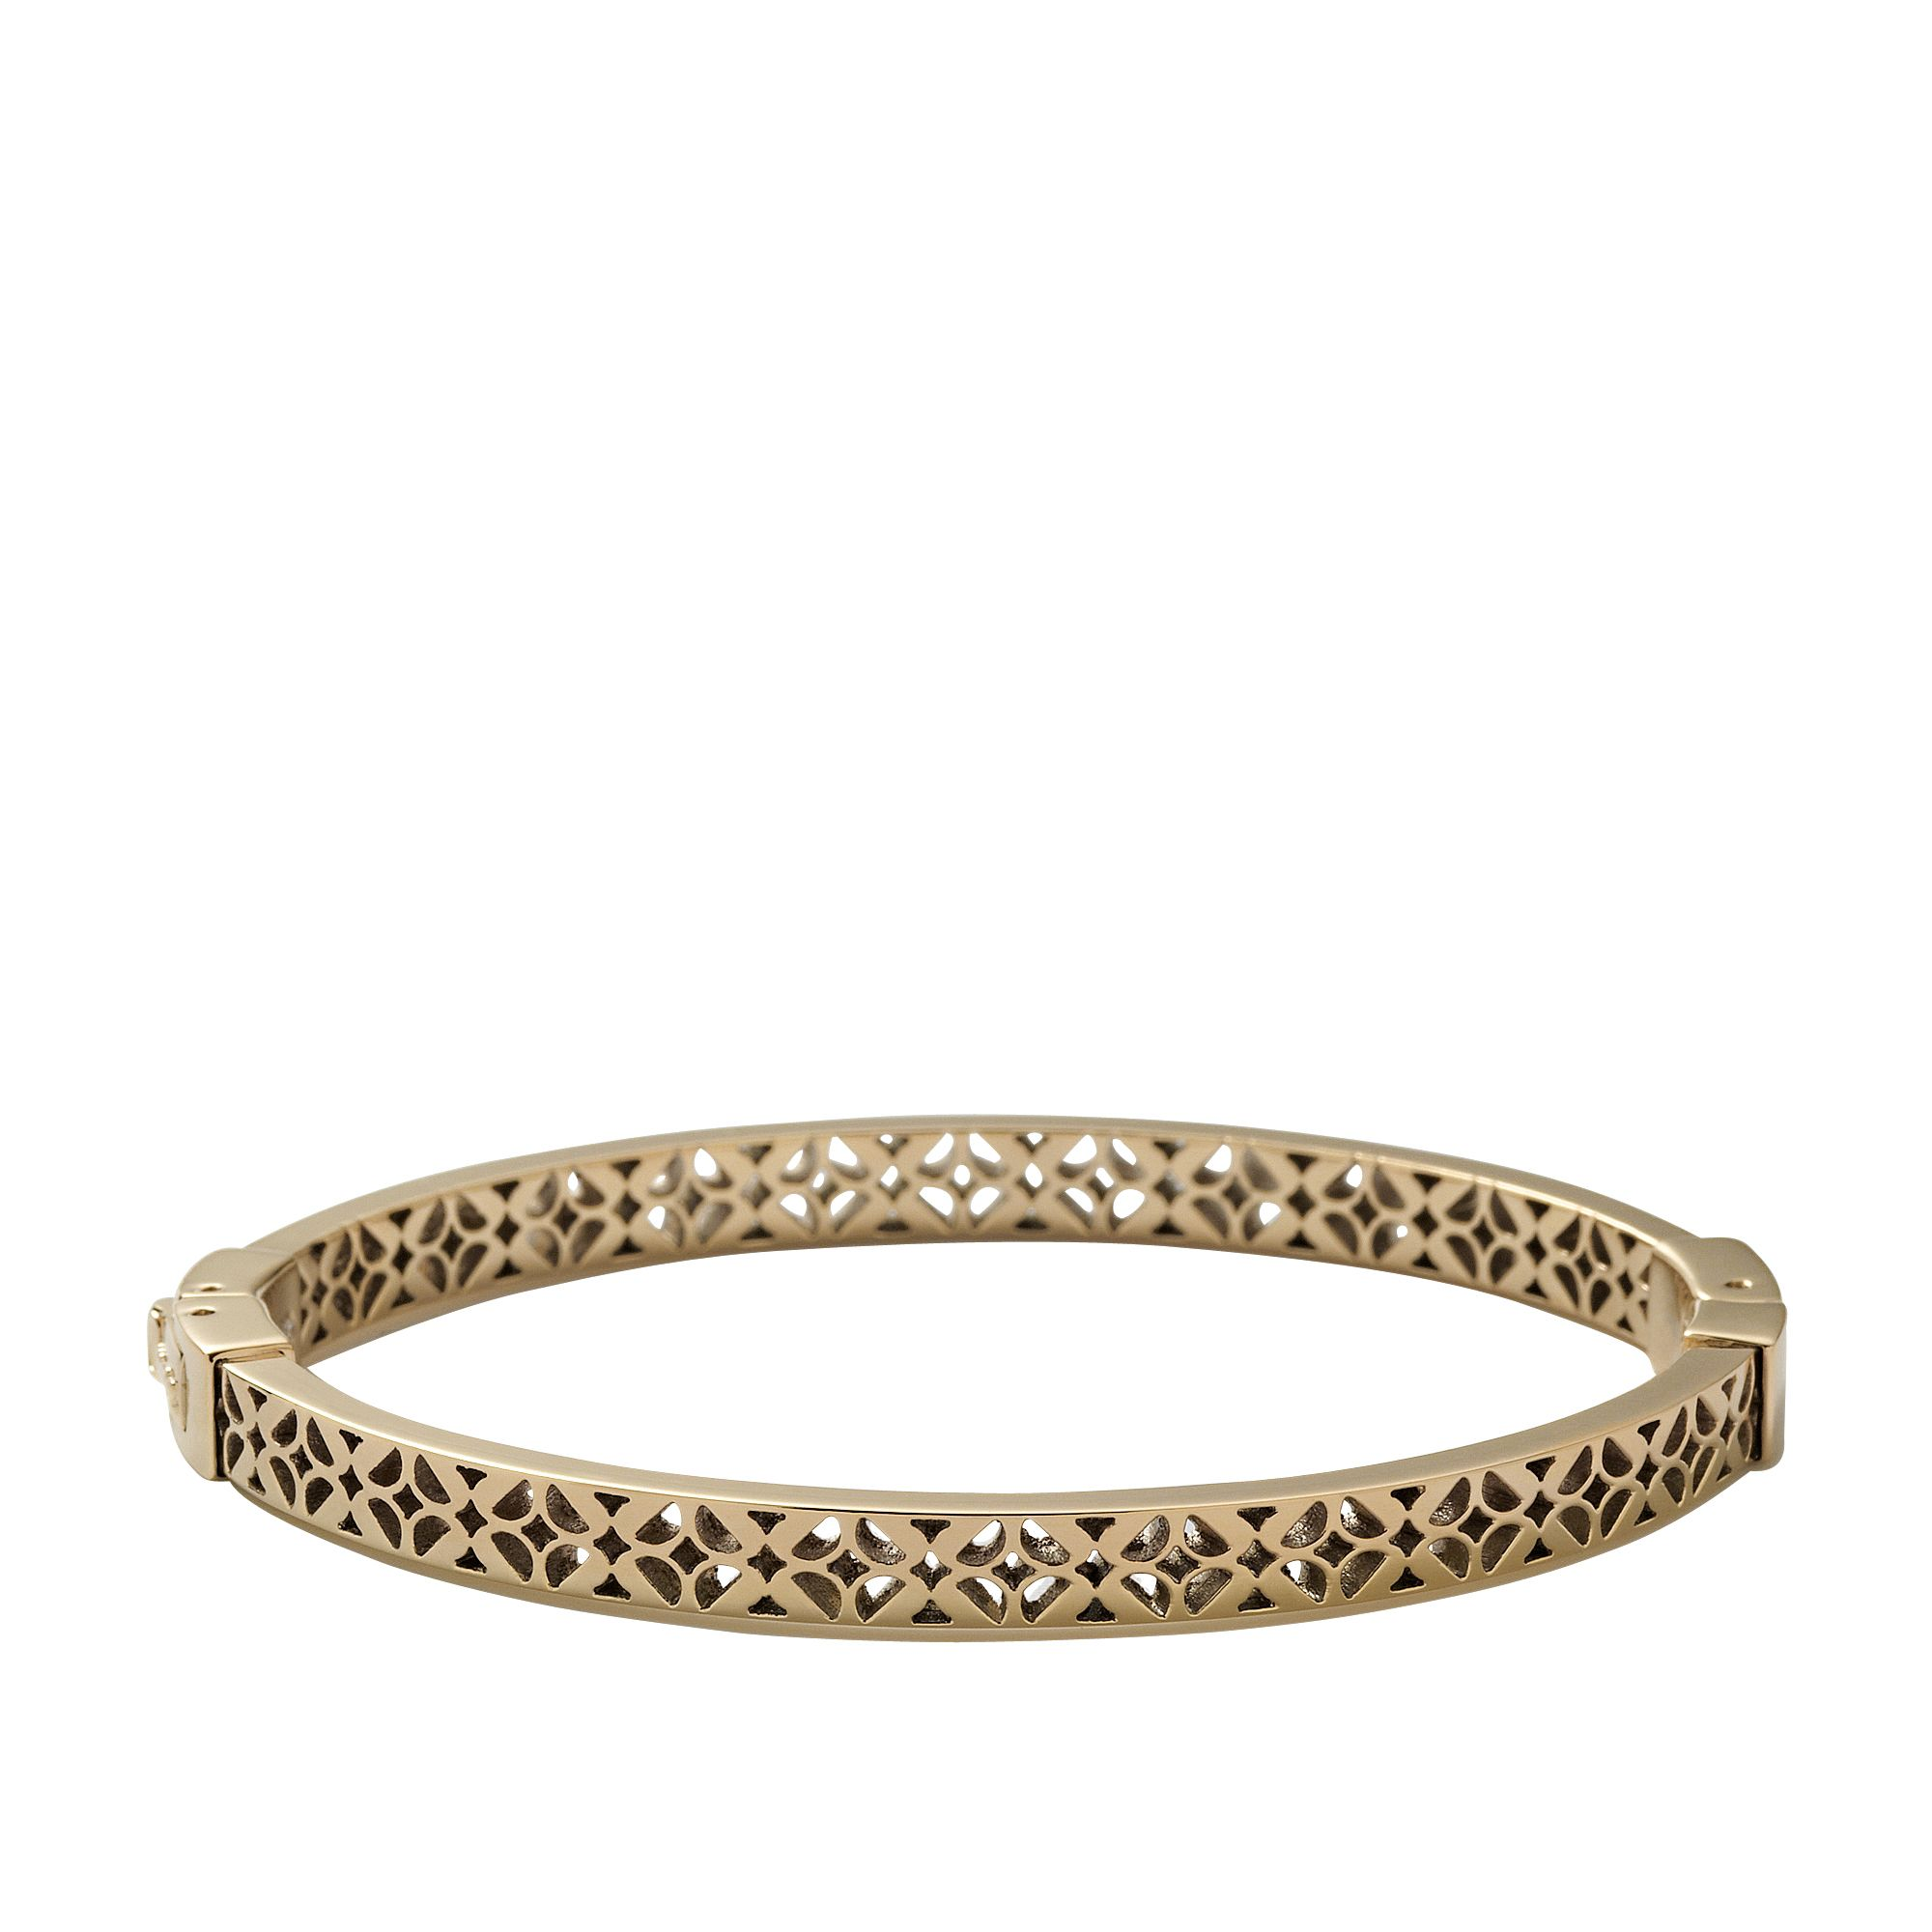 Jf00098710 Ladies gold iconic Bangle bracelet